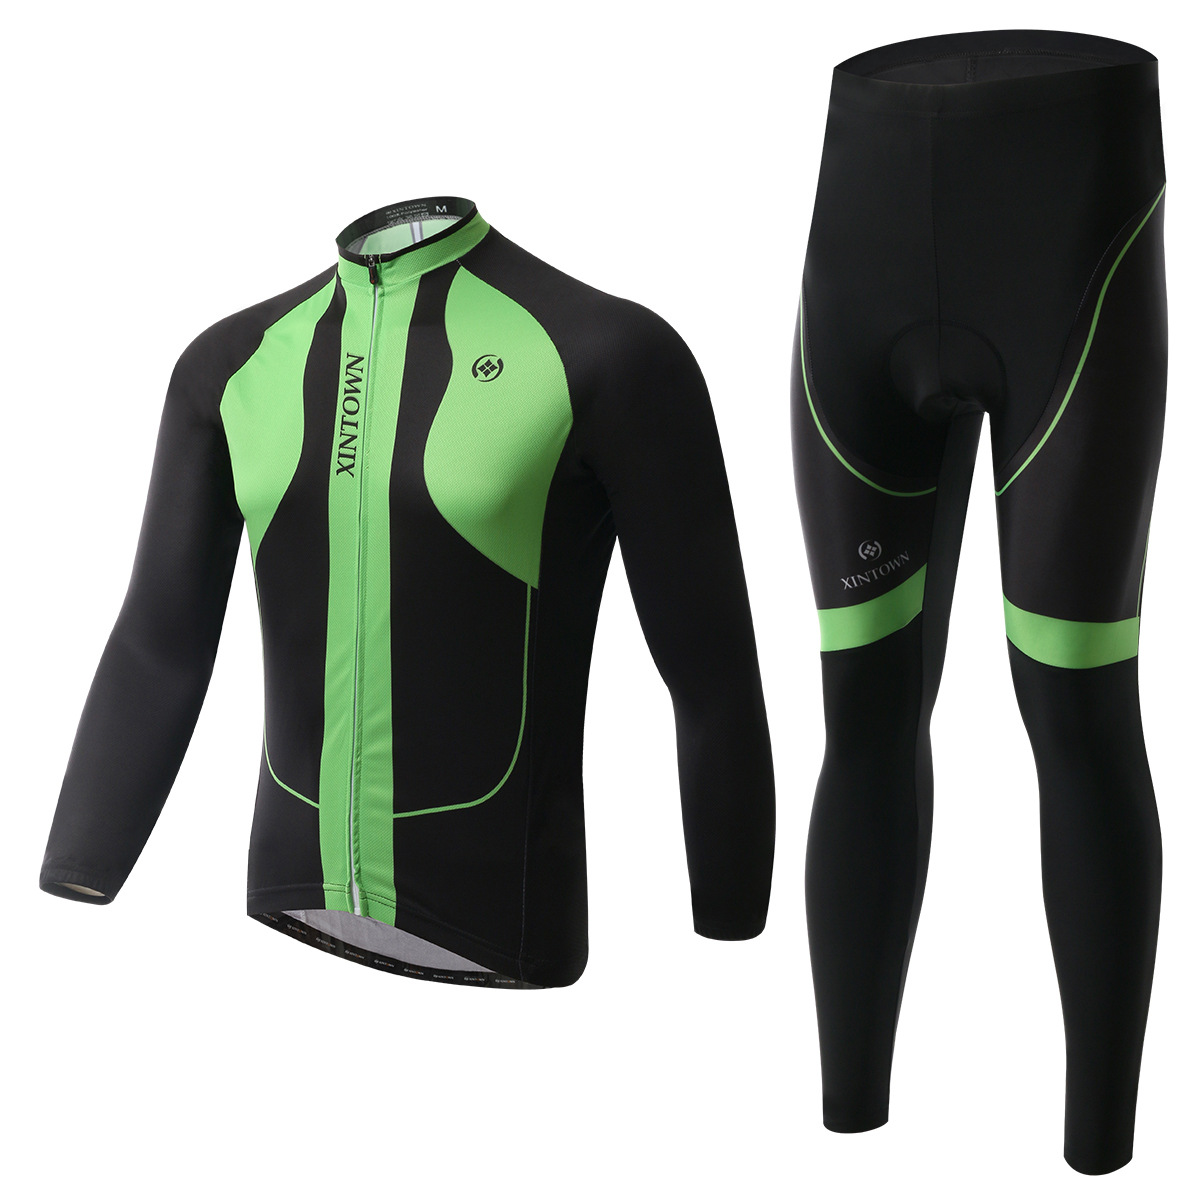 XINTOWN Long green riding Jersey long sleeve suit bicycle suits spring autumn moisture perspiration quick-drying clothing pants